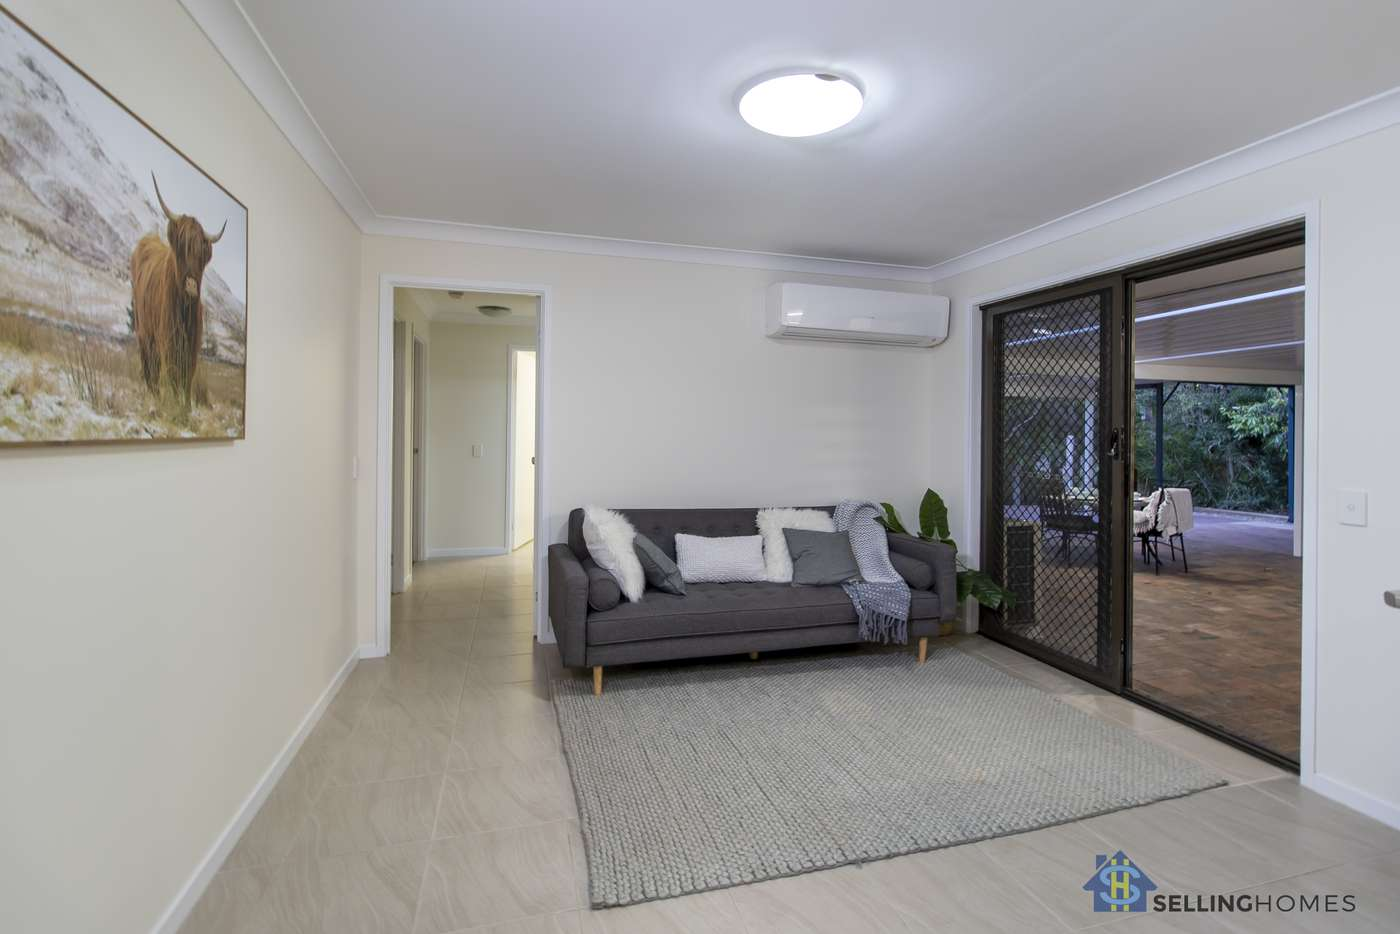 Sixth view of Homely house listing, 14 Zambesi St, Riverhills QLD 4074